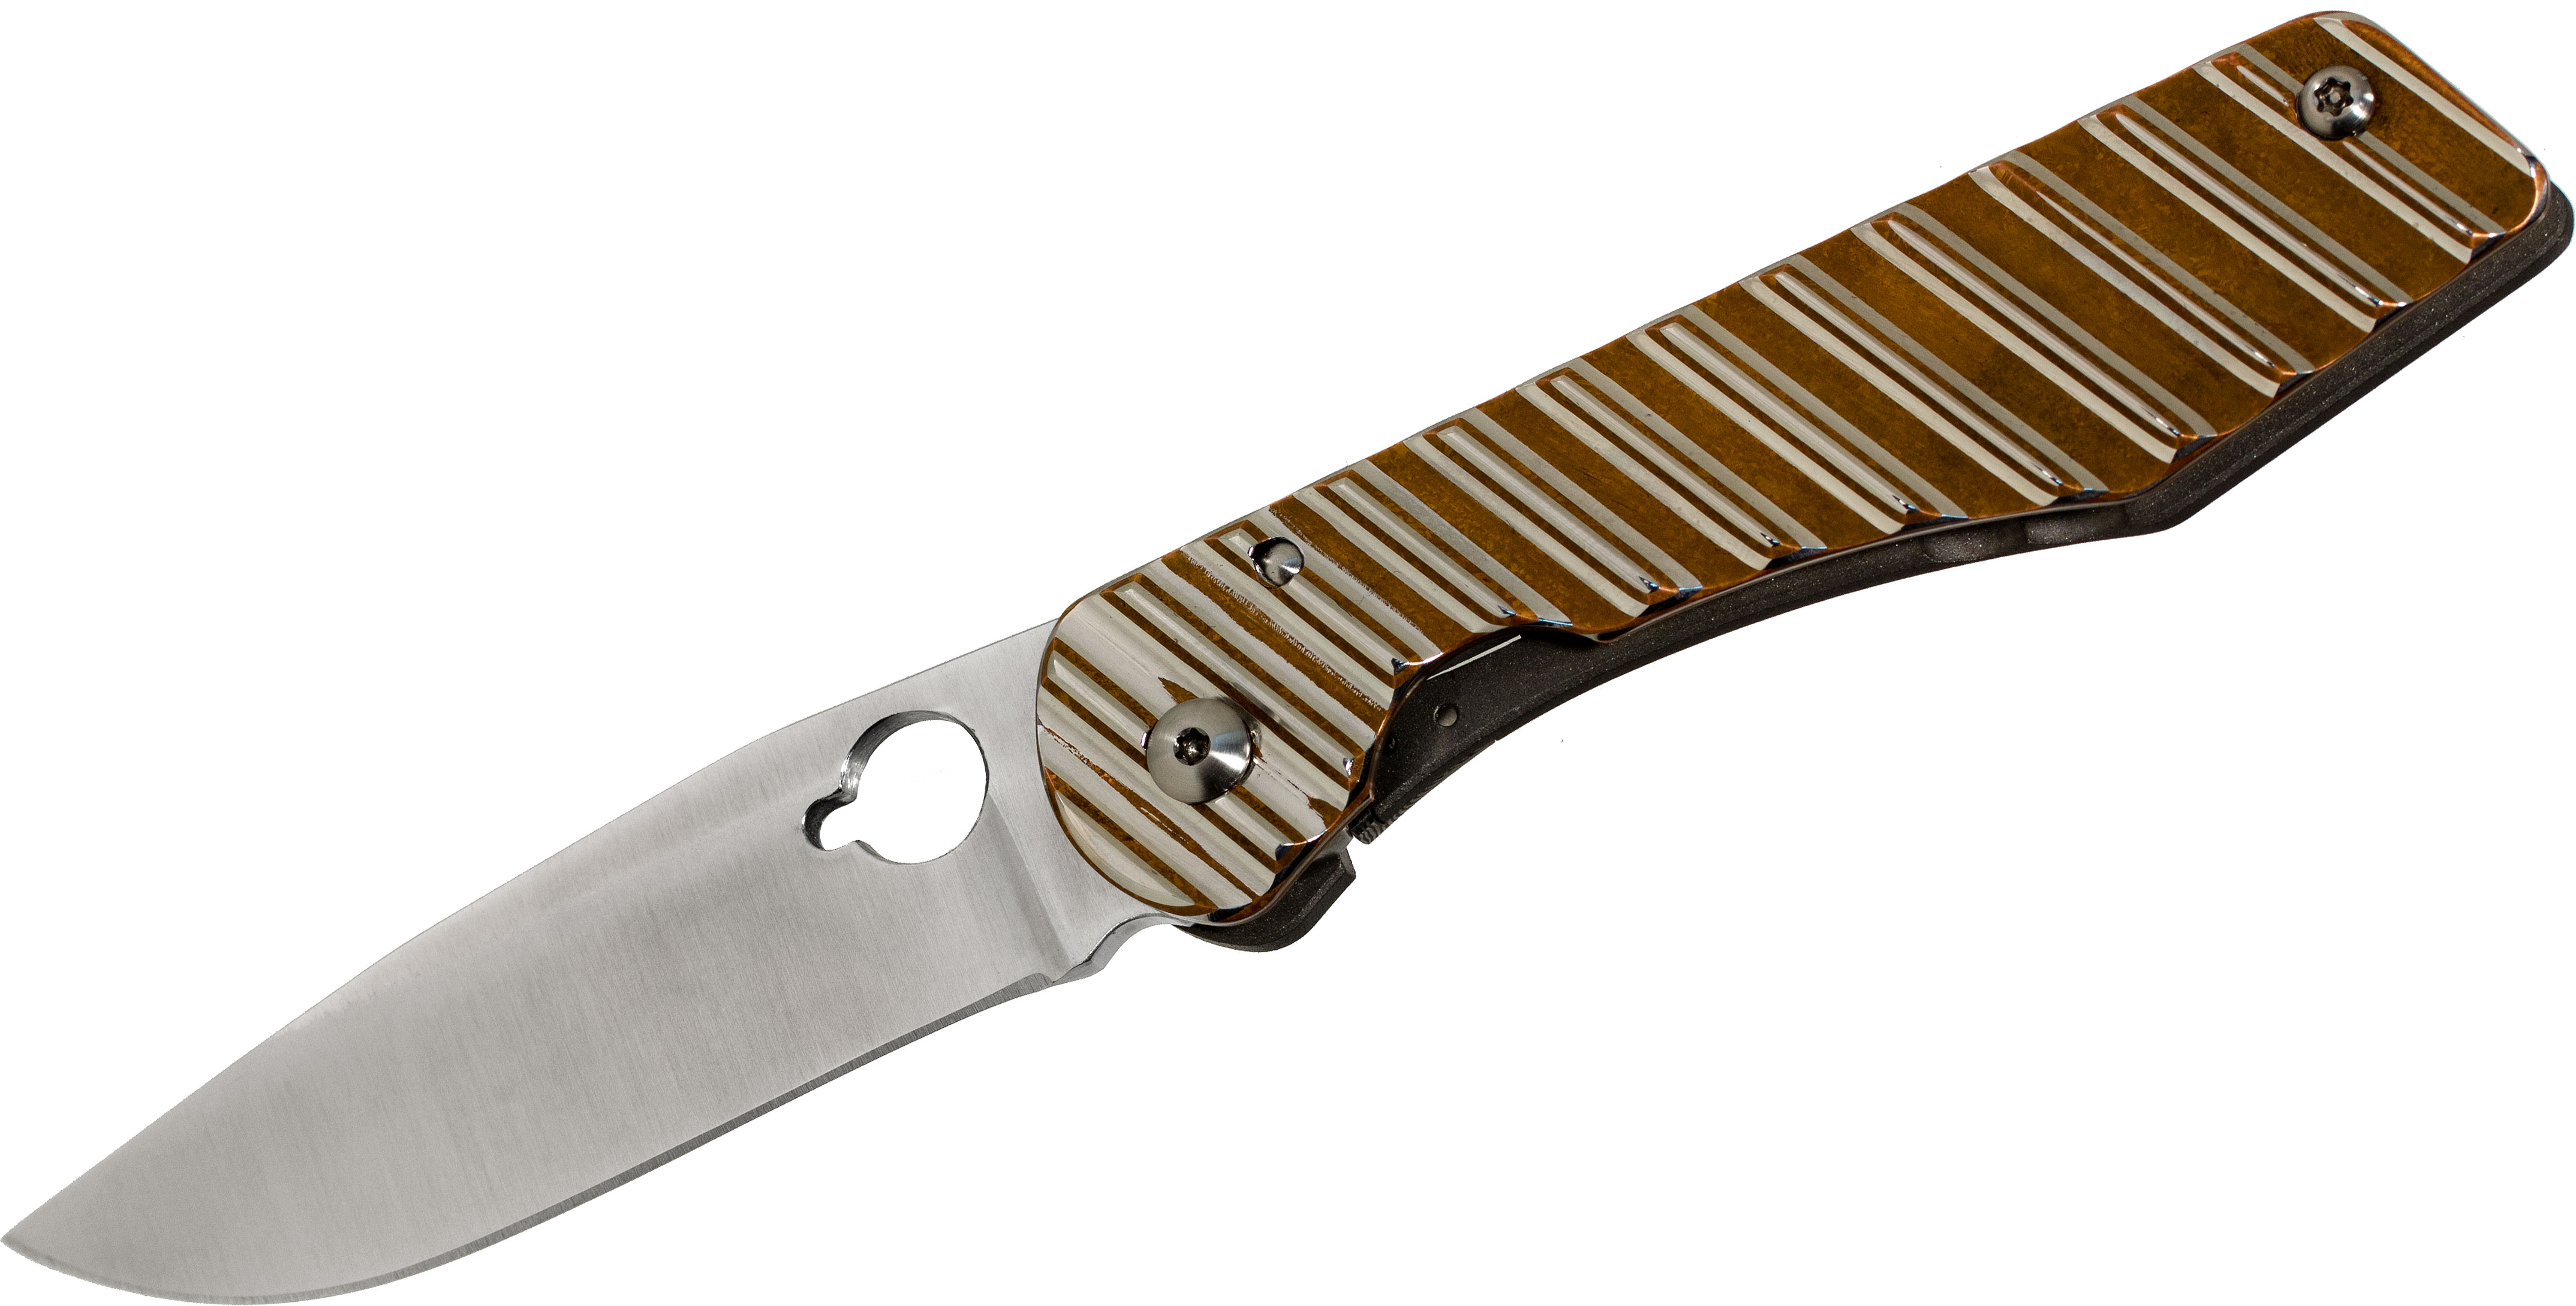 Schanz Handmade Knives Custom DPPK2 Folder 3.625 inch Niolox Plain Blade, Bronze Titanium Laminate Handle